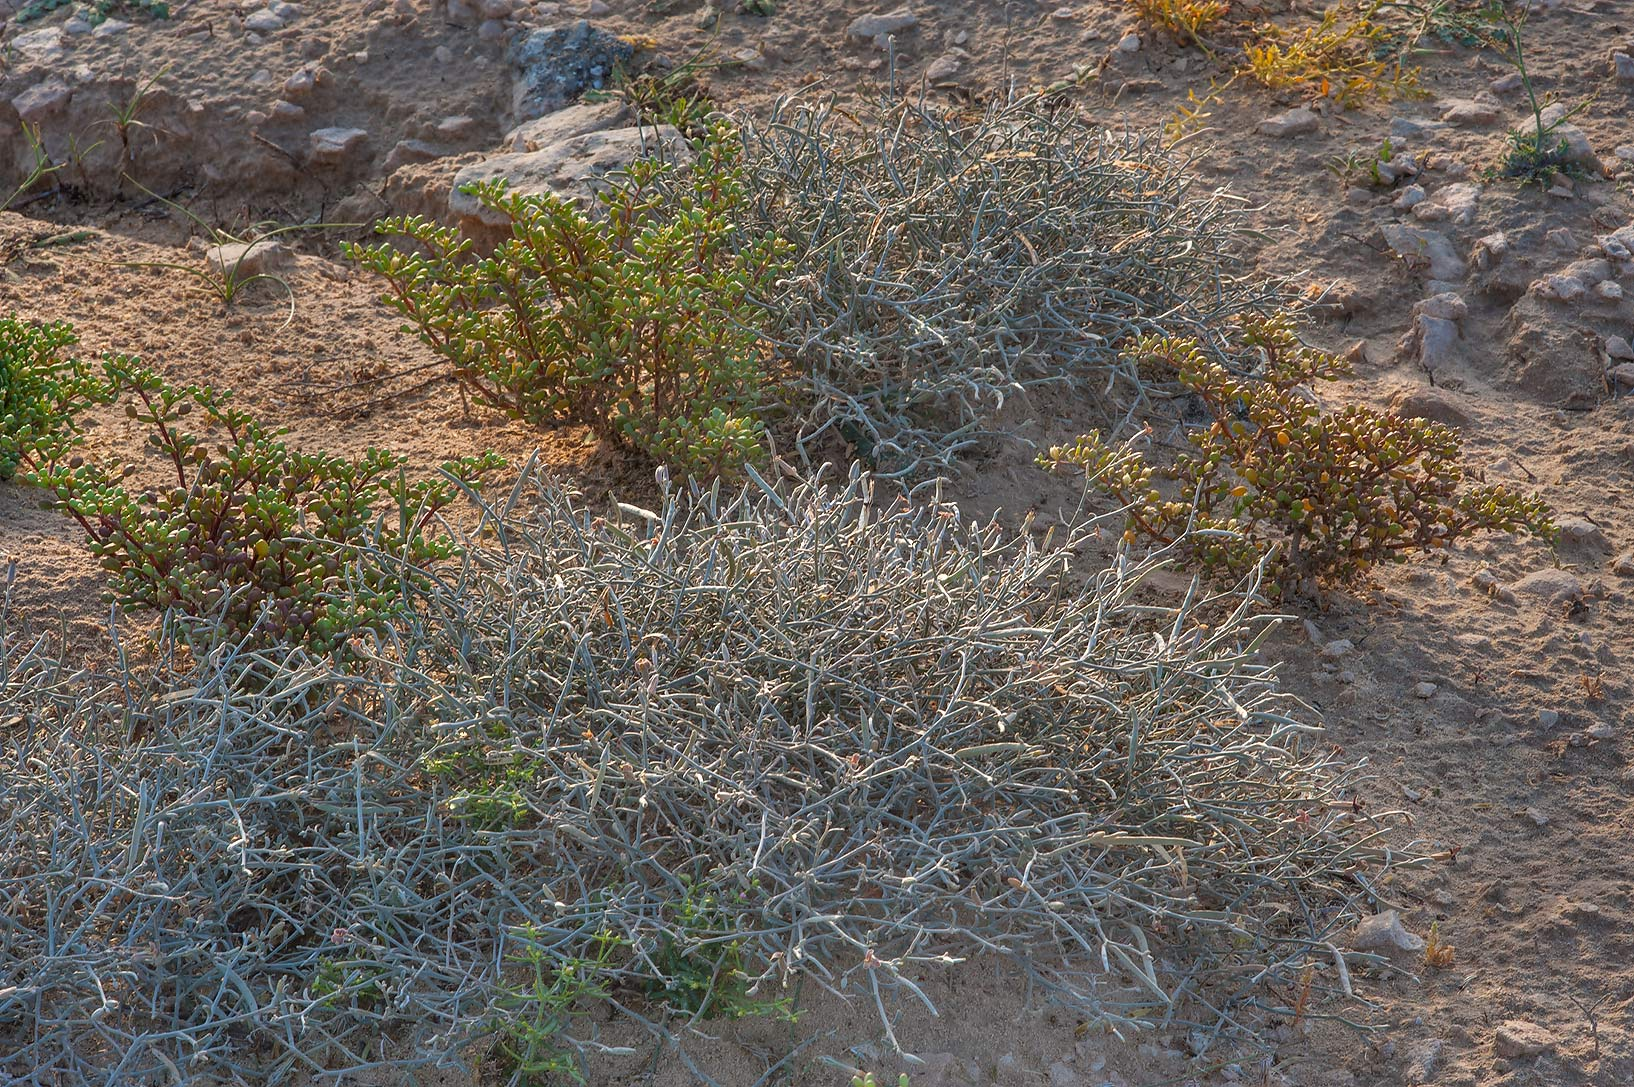 Grey bushes of Farsetia heliophila on a rocky ridge of Jebel Fuwairit. Northern Qatar